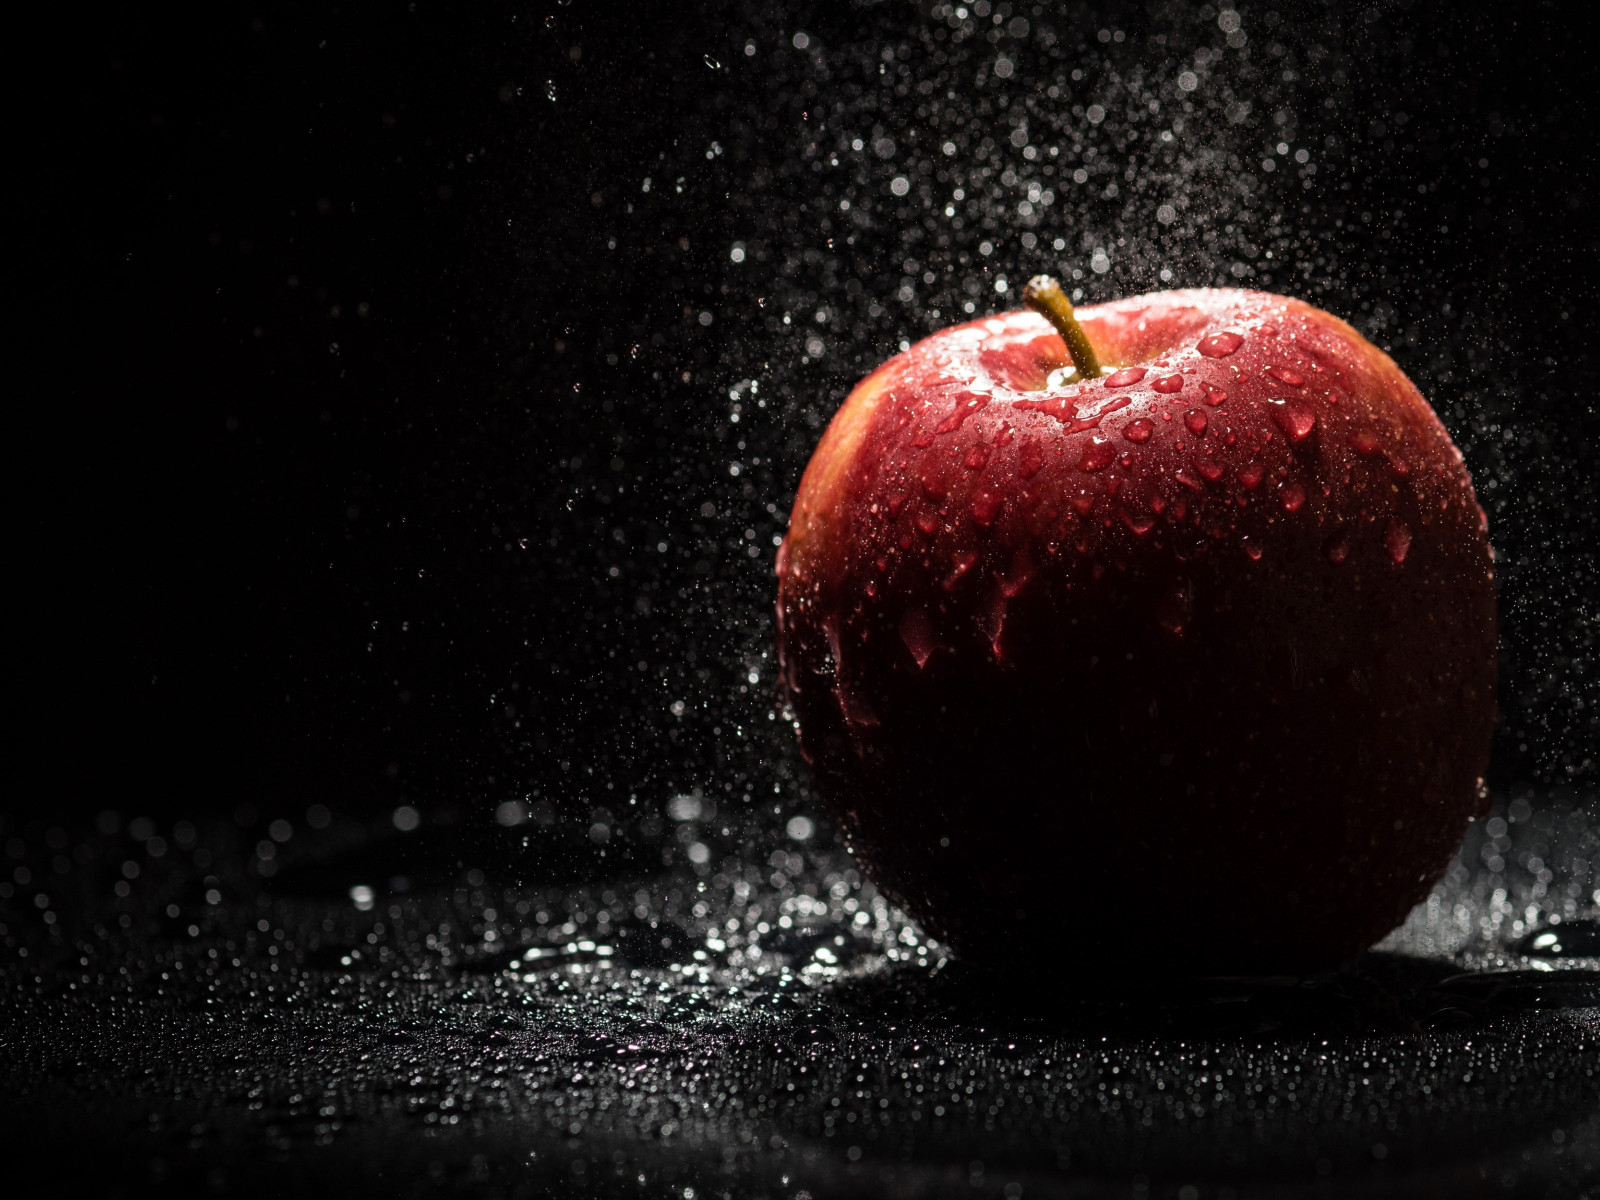 The apple, natural red apple wallpaper 1600x1200